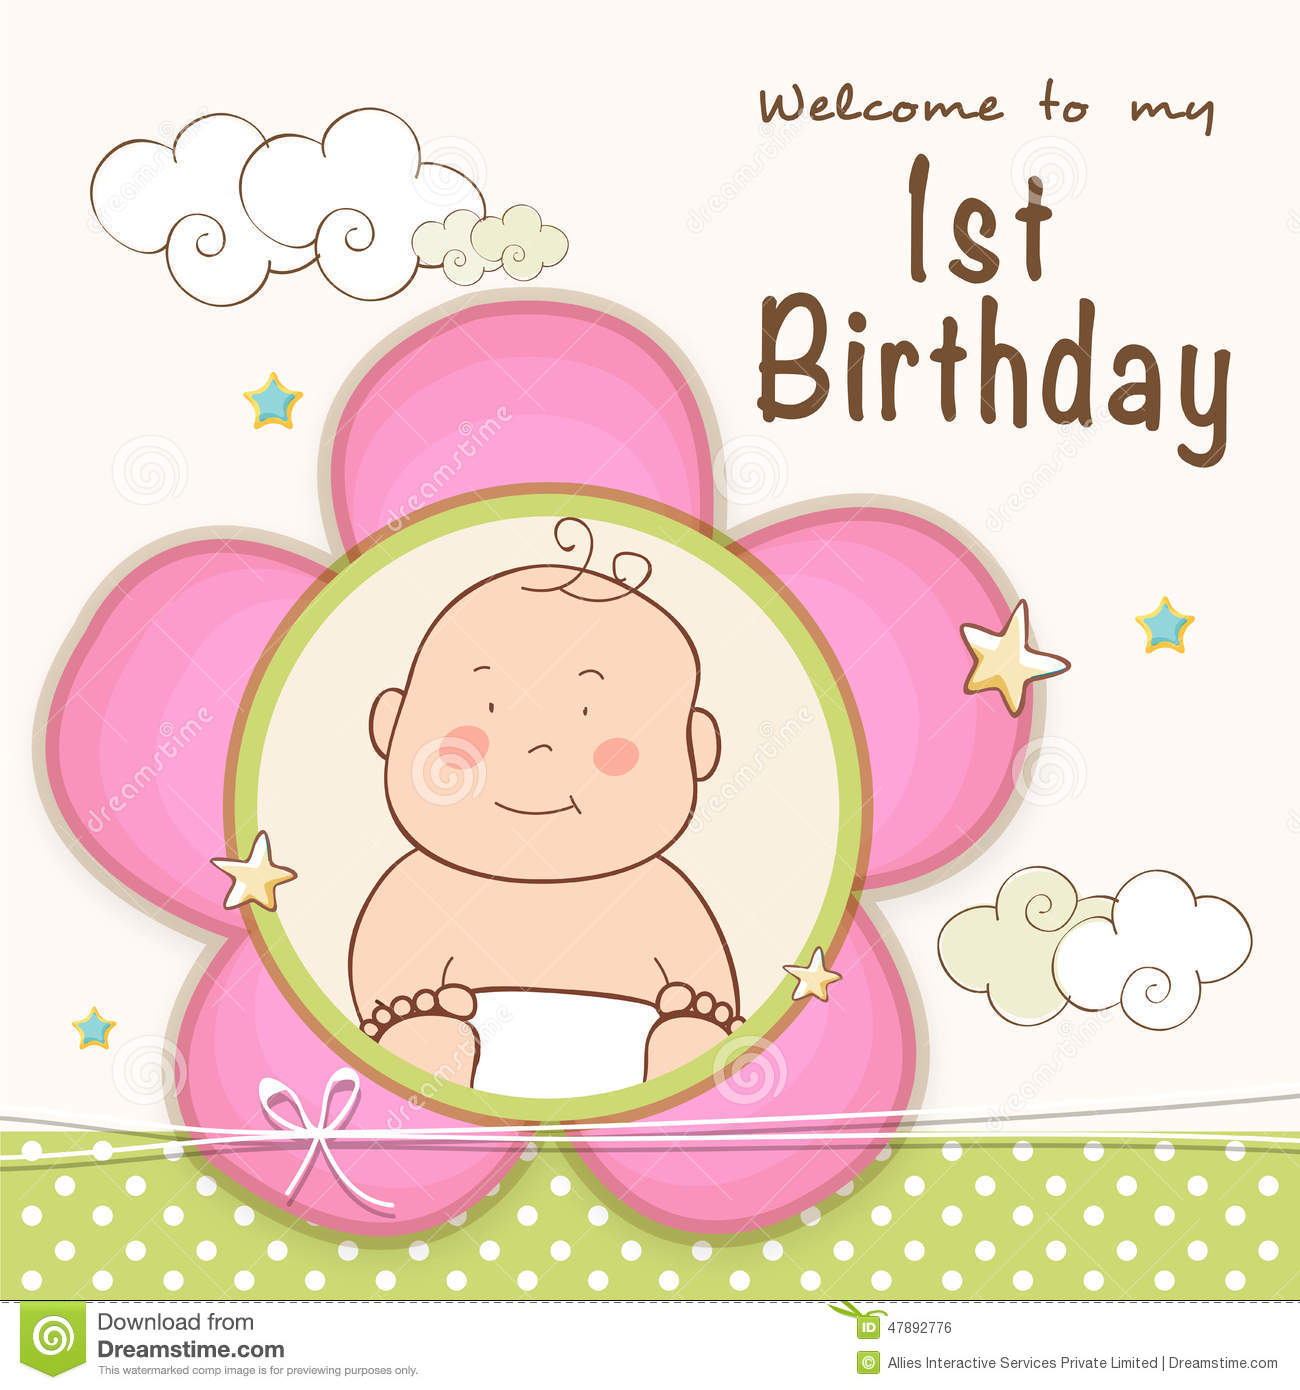 1st birthday invitation card design stock illustration 1st birthday invitation card design stopboris Choice Image